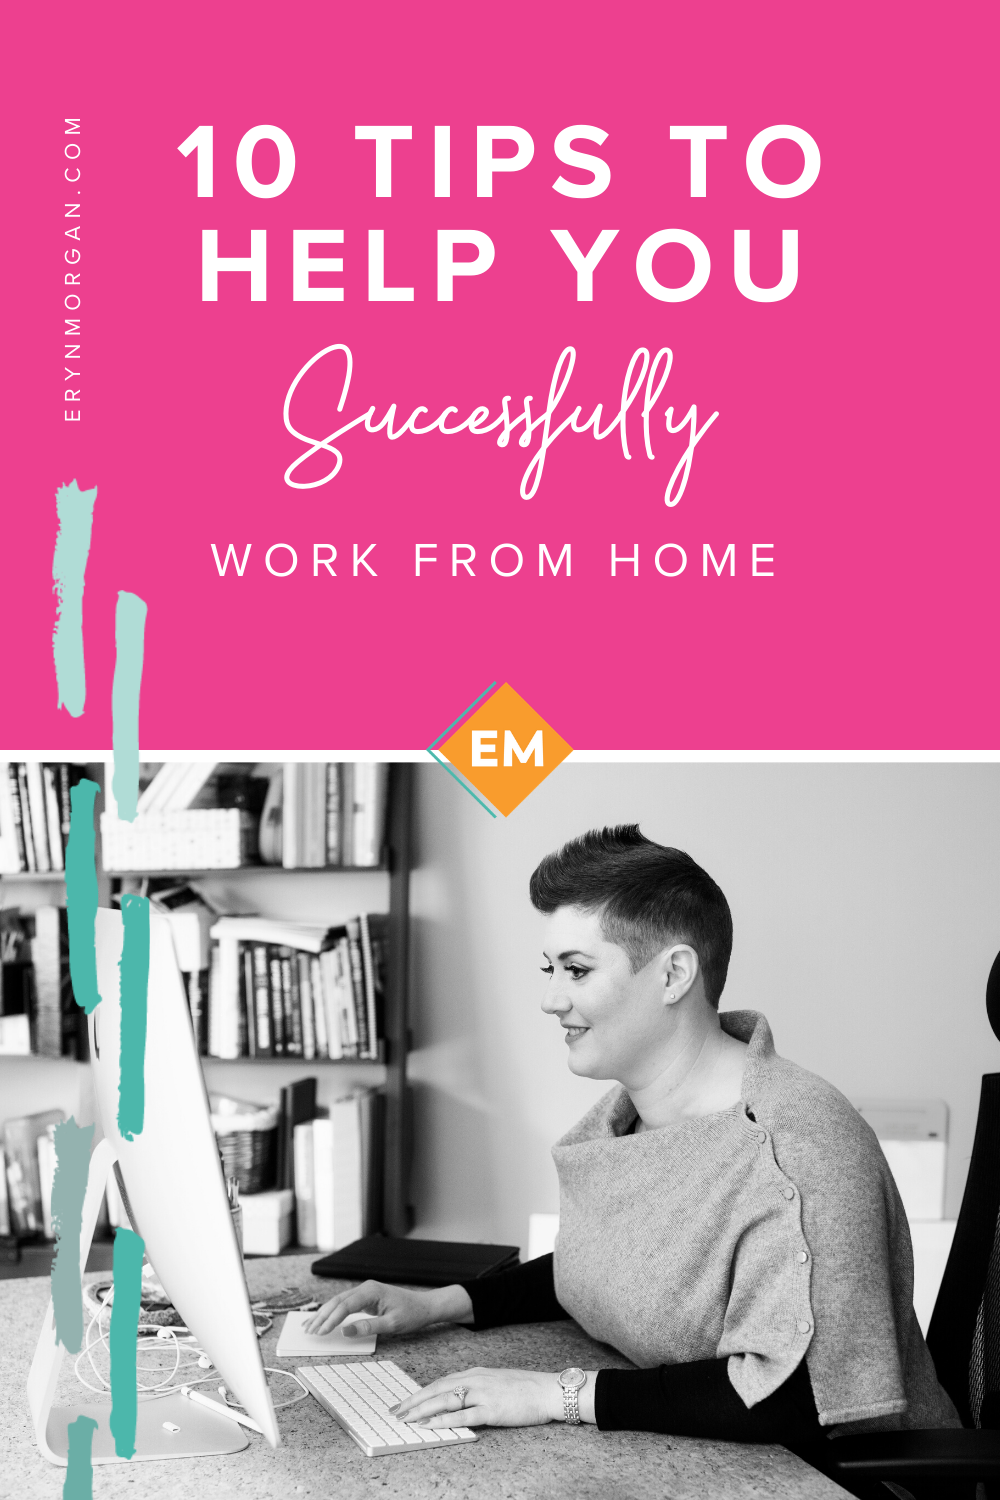 10 Tips to Help You Successfully Work From Home in 2020